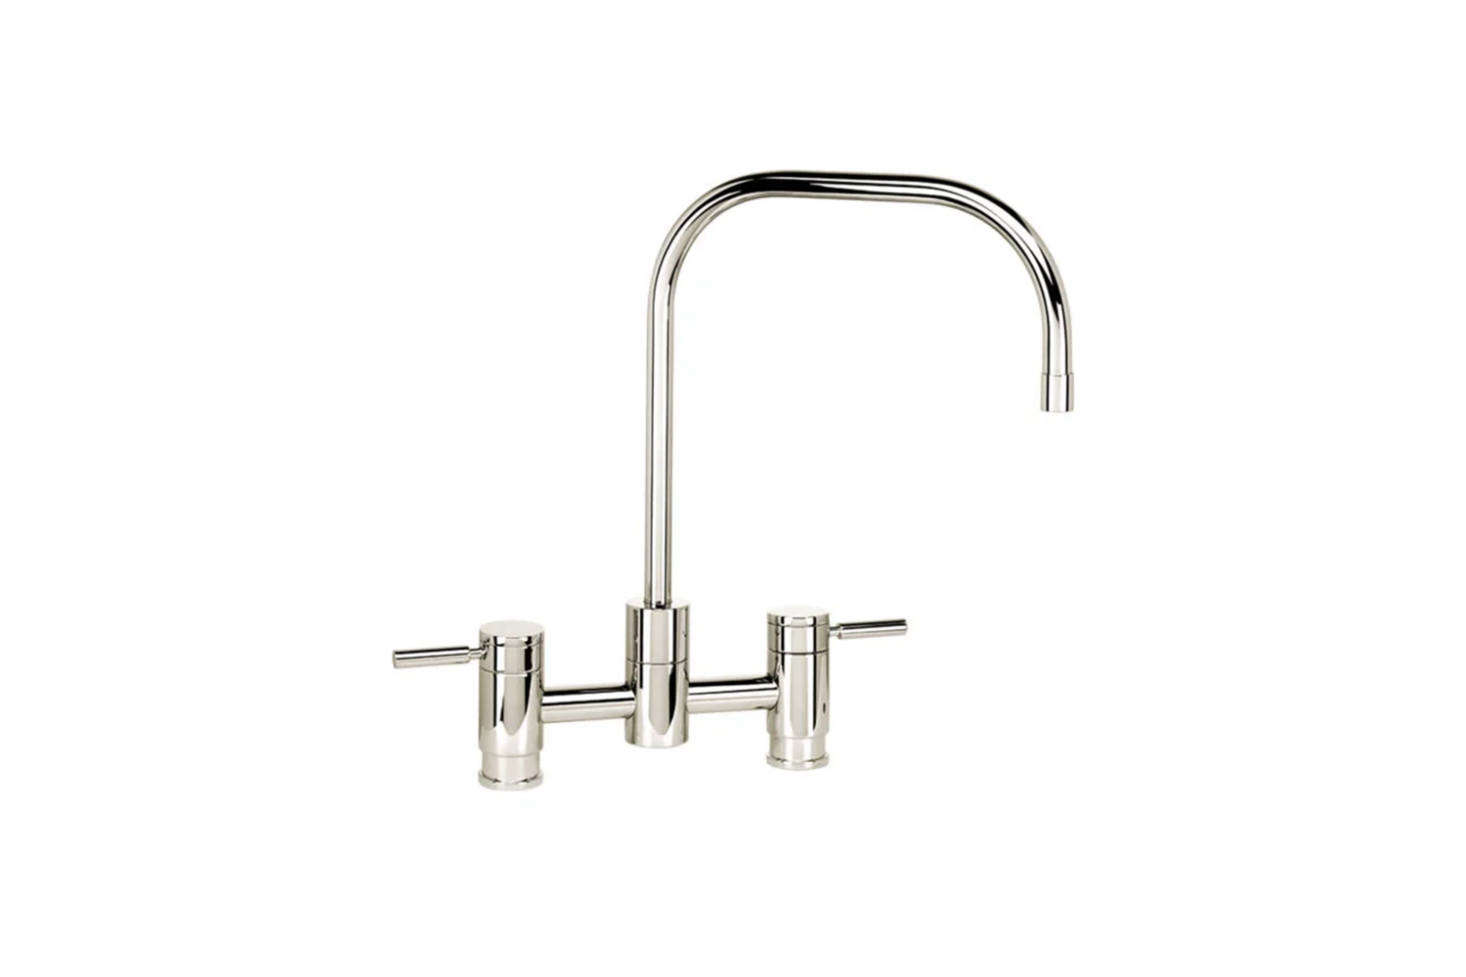 10 Easy Pieces Modern Bridge Faucets